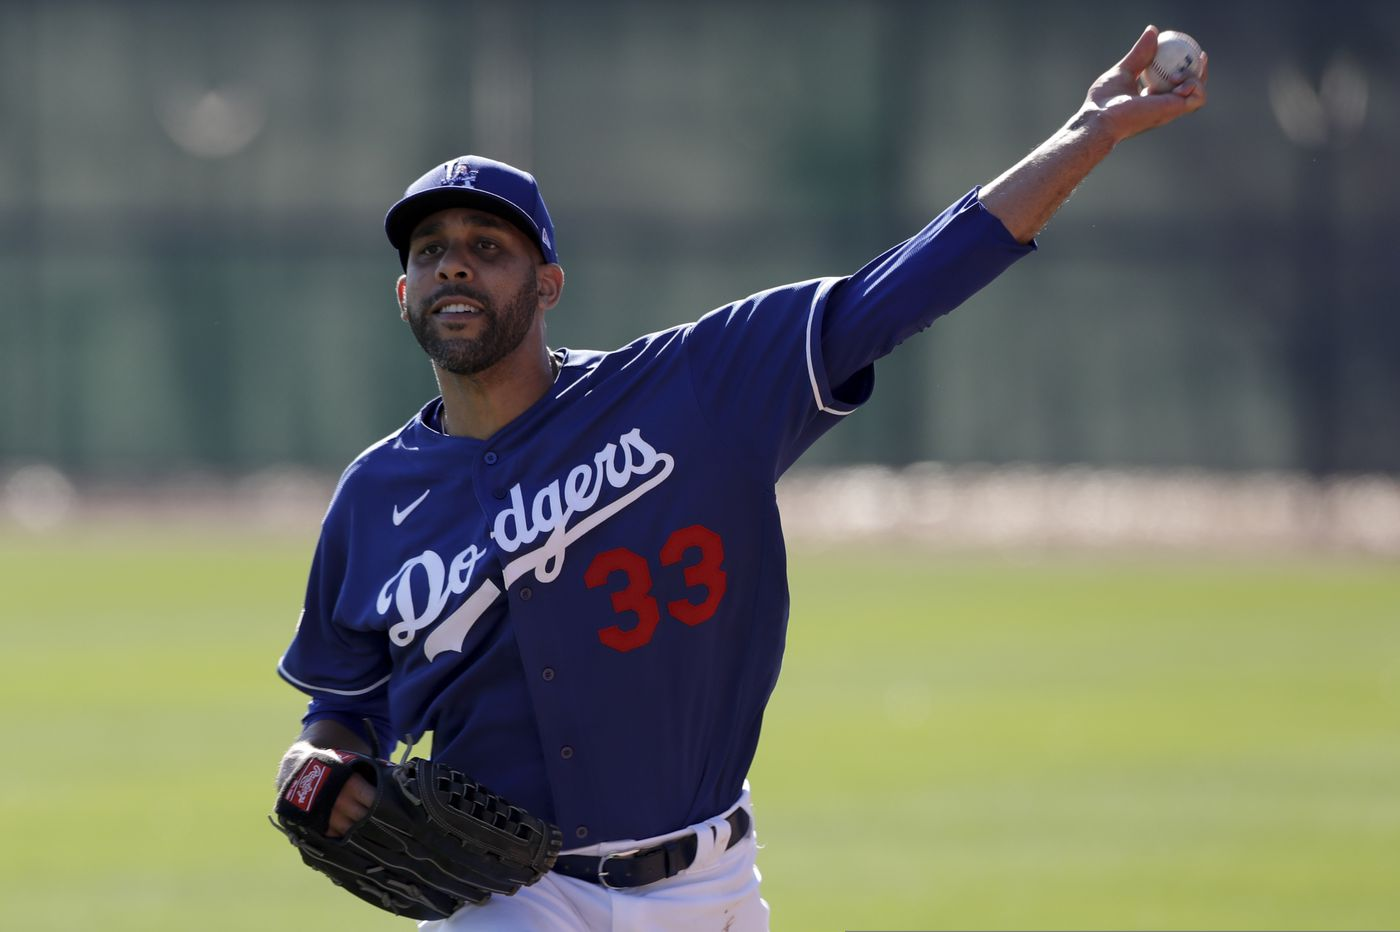 Dodgers pitcher David Price won't play this year because of coronavirus